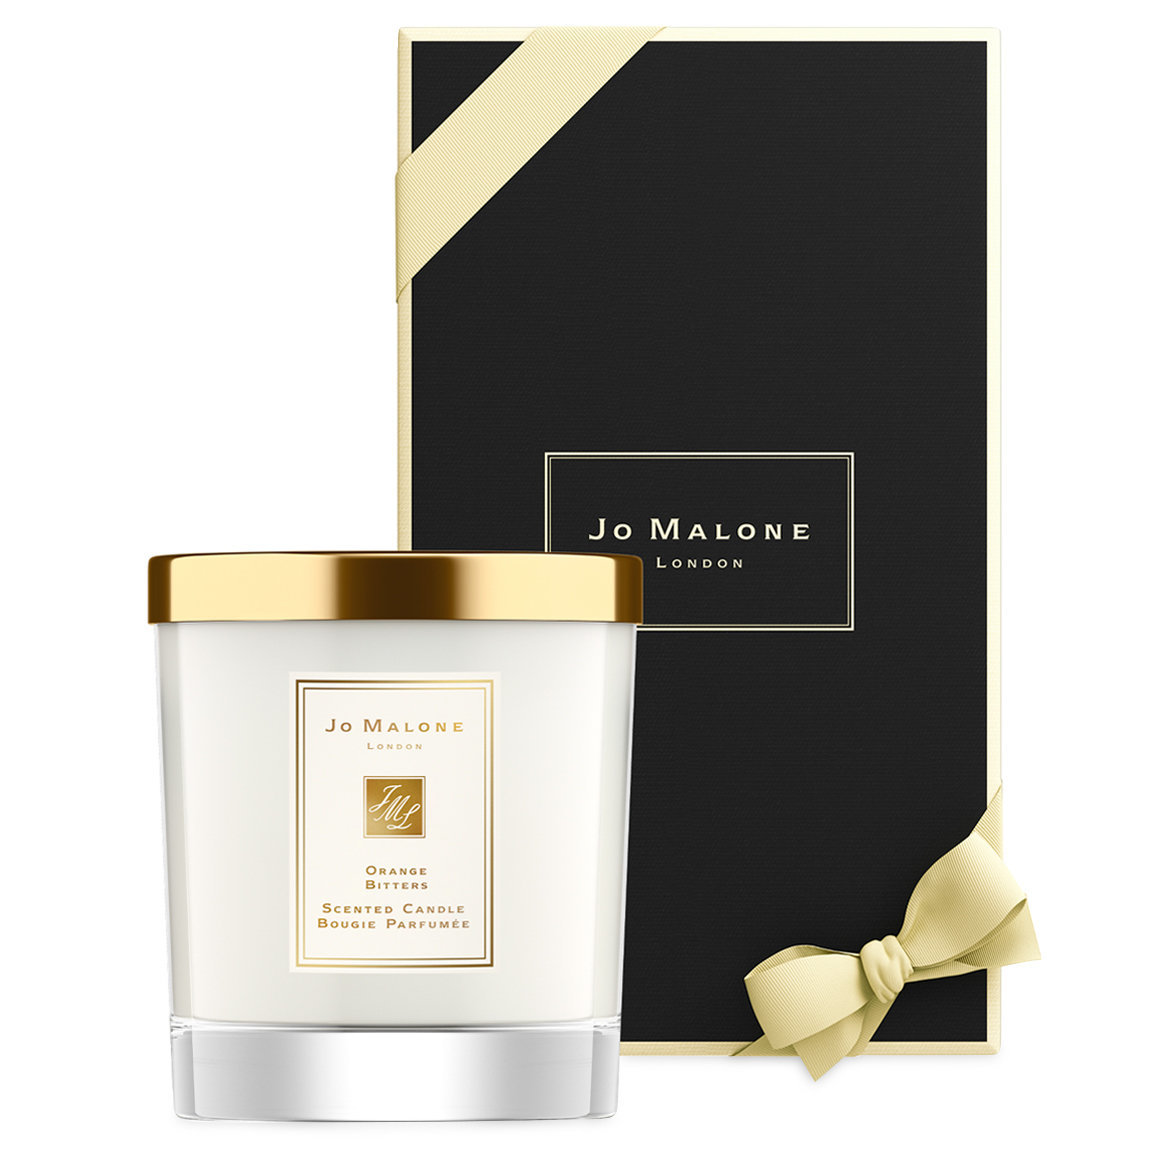 Jo Malone London Orange Bitters Home Candle product swatch.